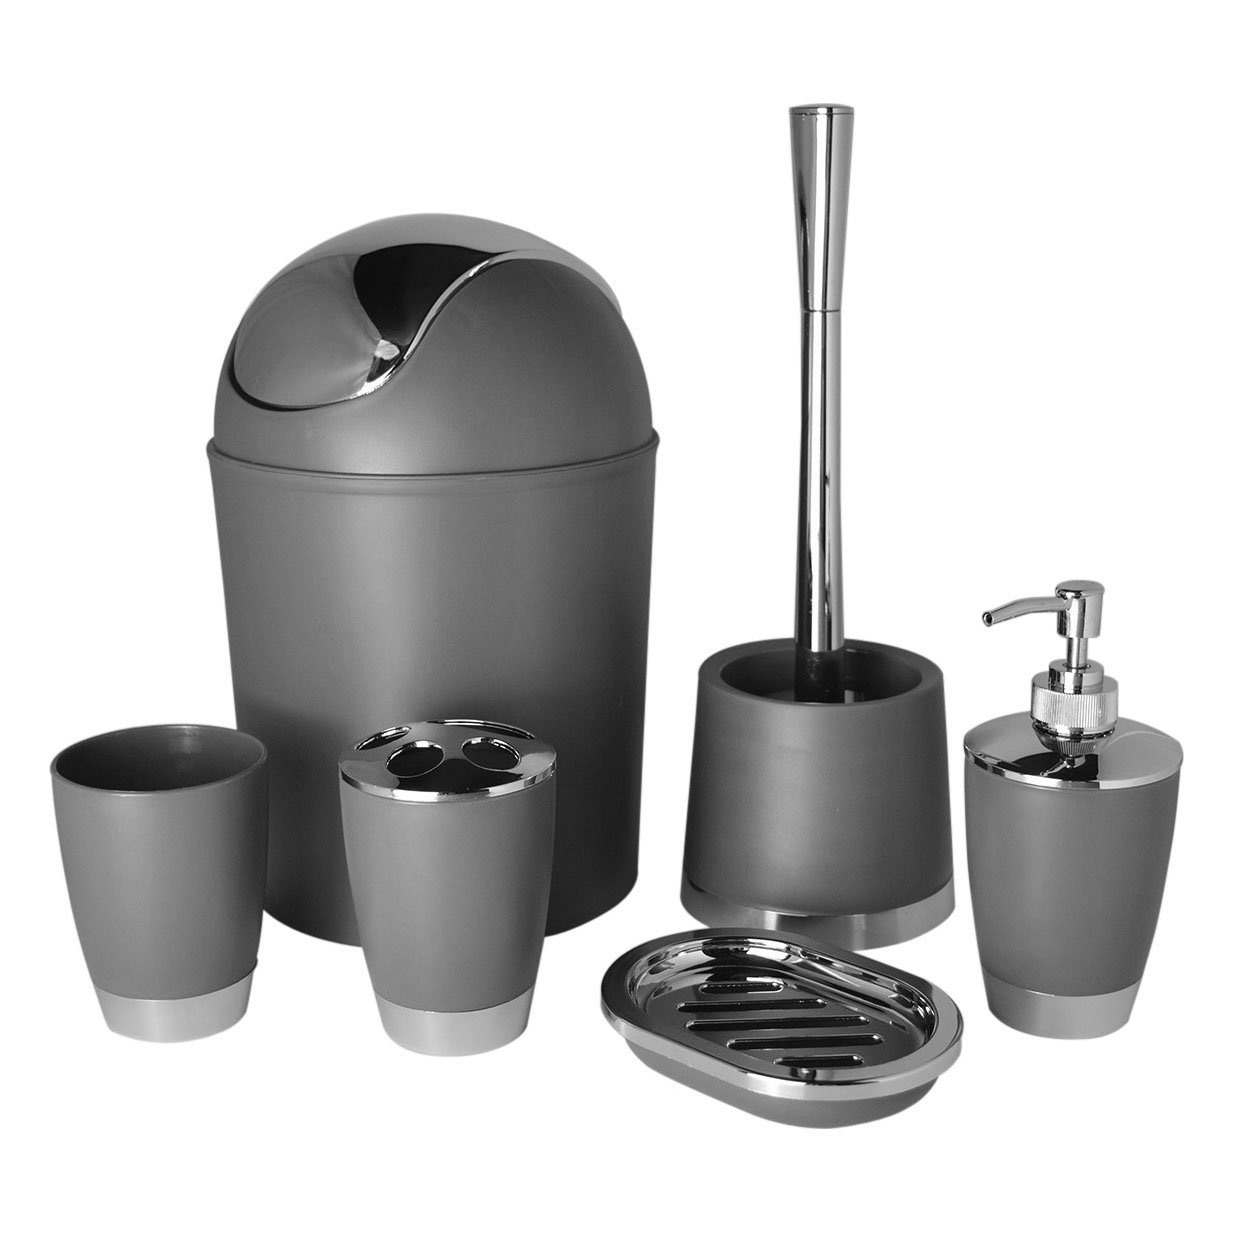 Bathlux Modern Design Piece Bathroom Accessory Set Toilet